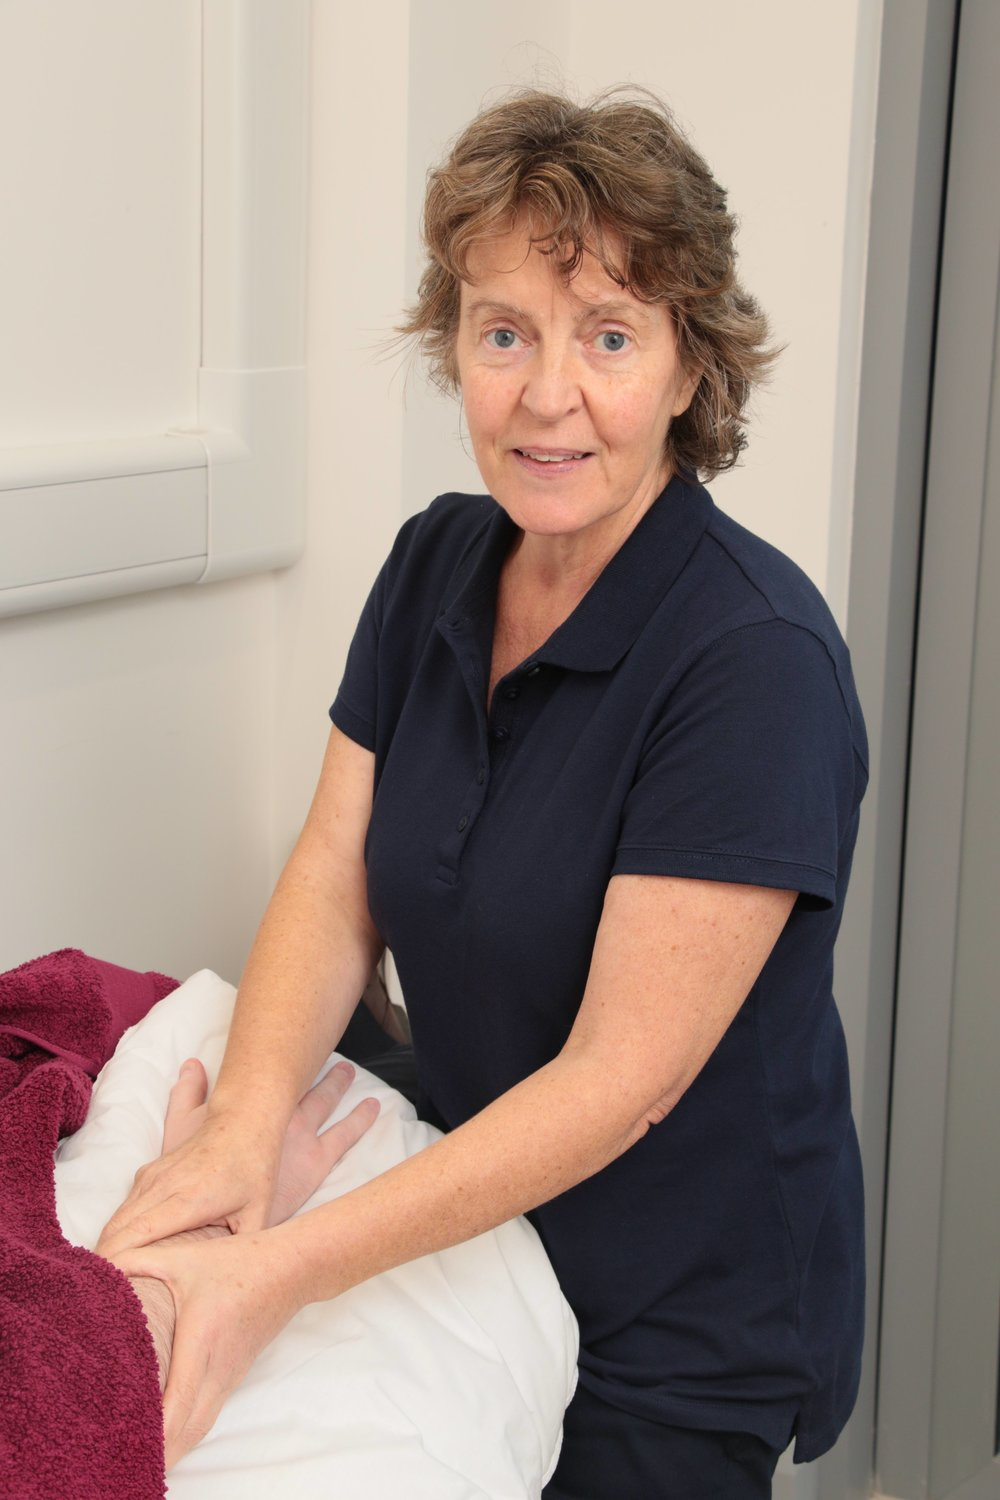 Norah kyne, clinical specialist physiotherapist in lymphoedema management